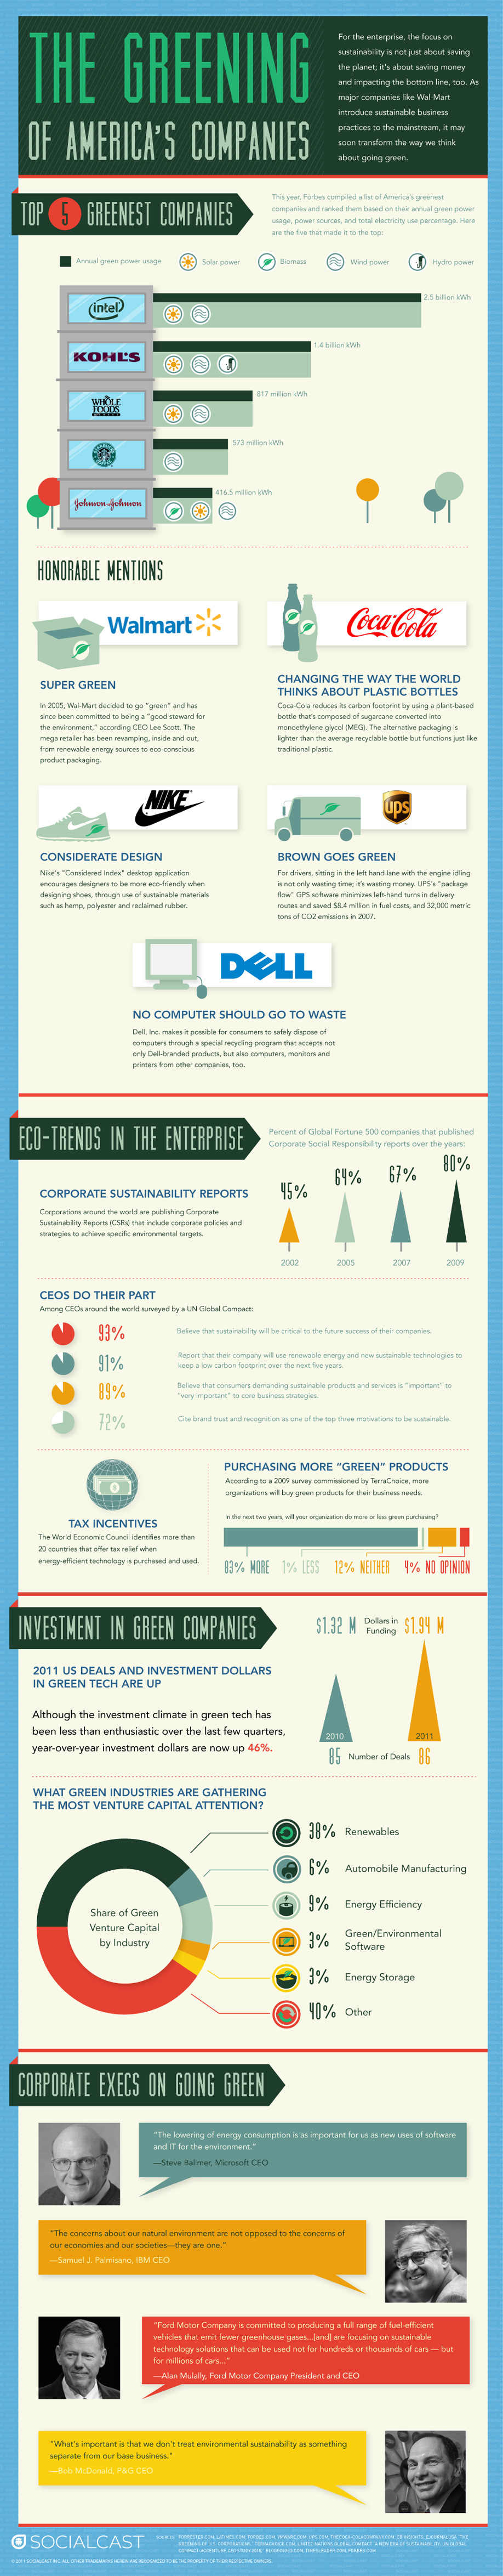 Infographic: The Greening Of America's Companies